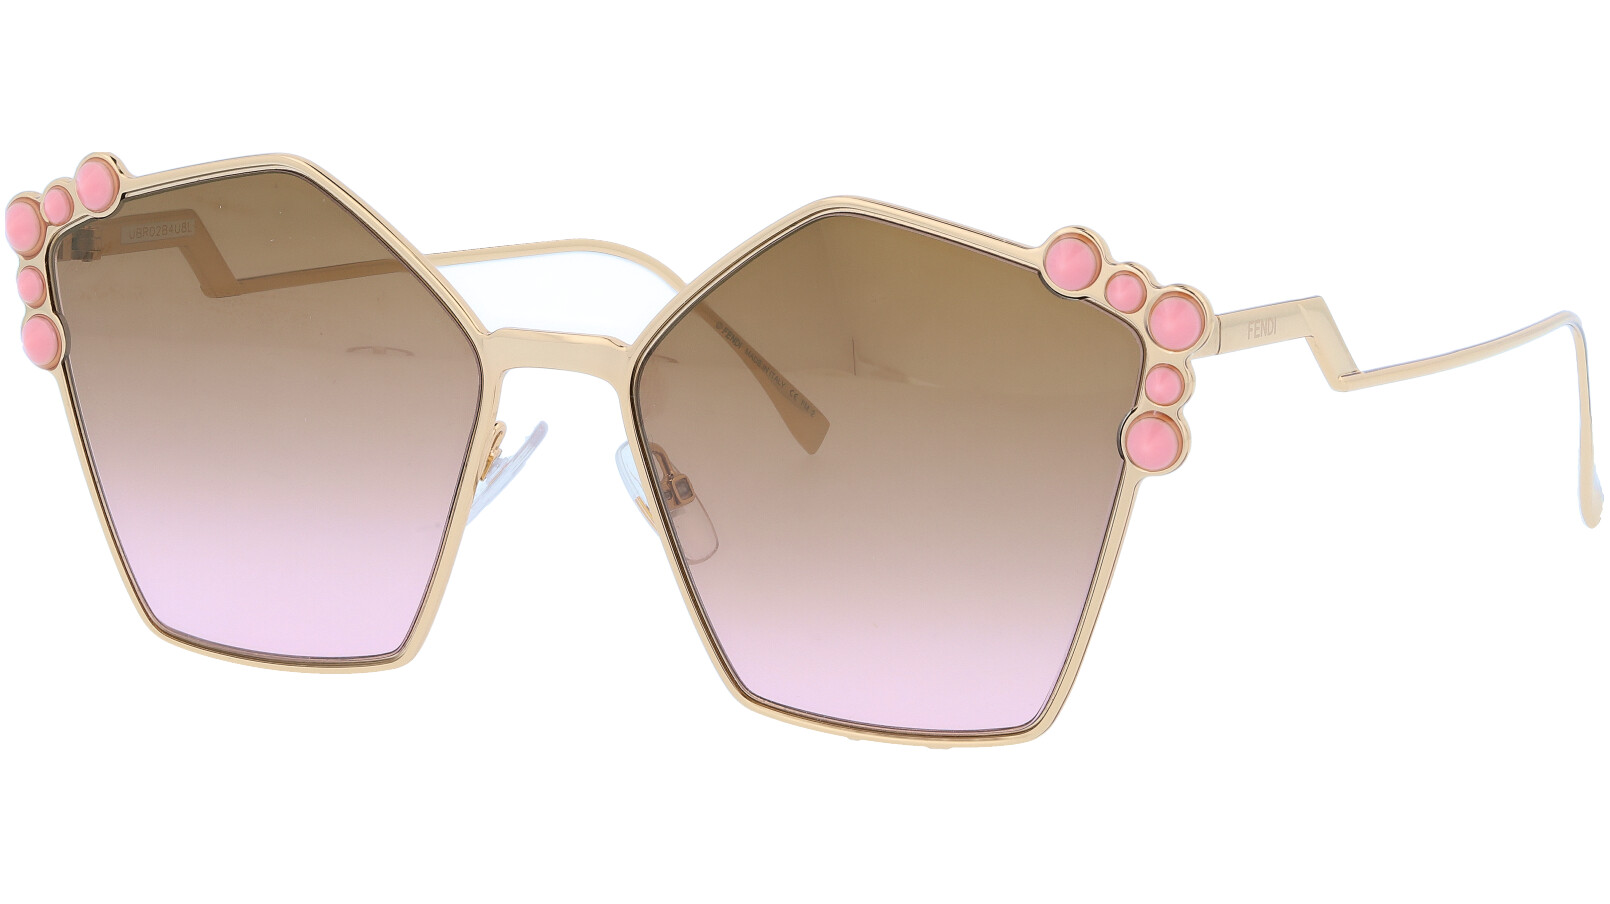 FENDI FF0261/S 00053 57 Rose Gold Studded Pentagon Sunglasses